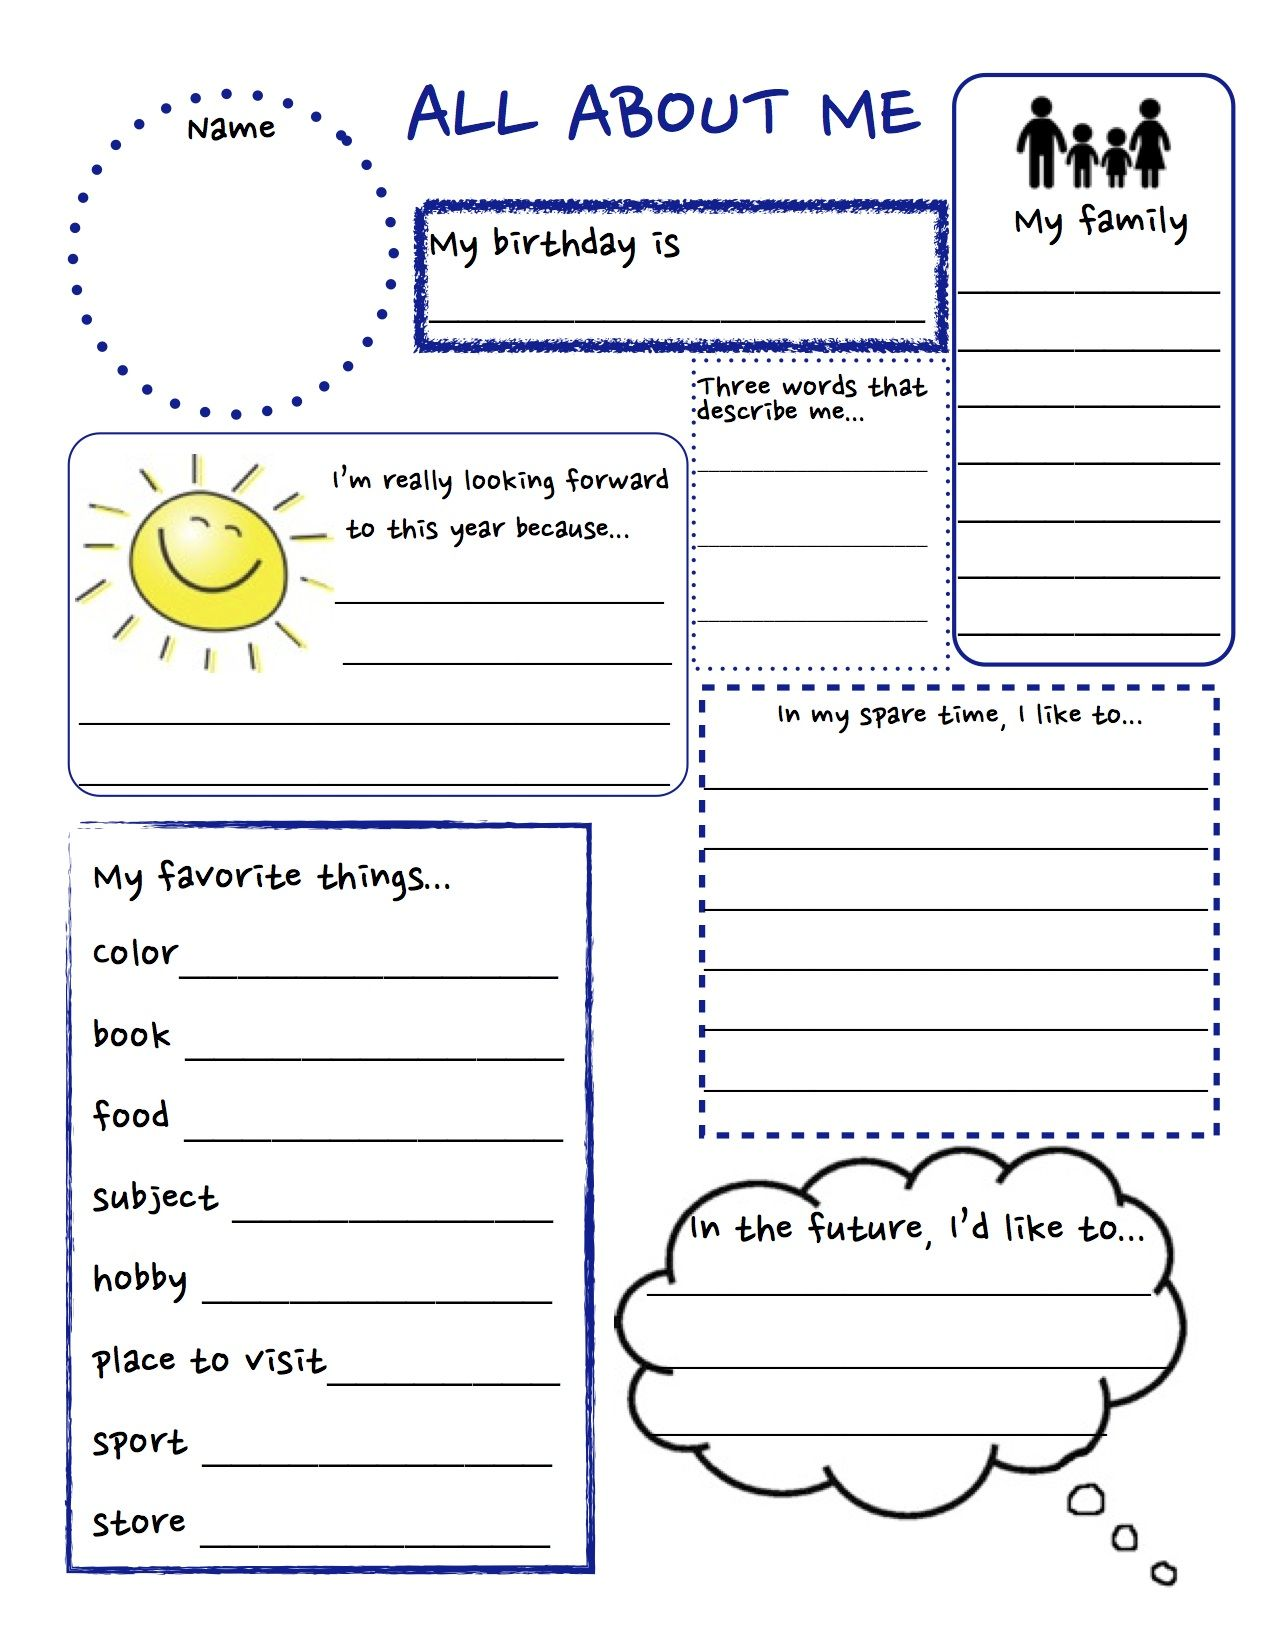 worksheet First Day Of School All About Me Worksheets all about me preschool template 6 best images of printable pinterest printable